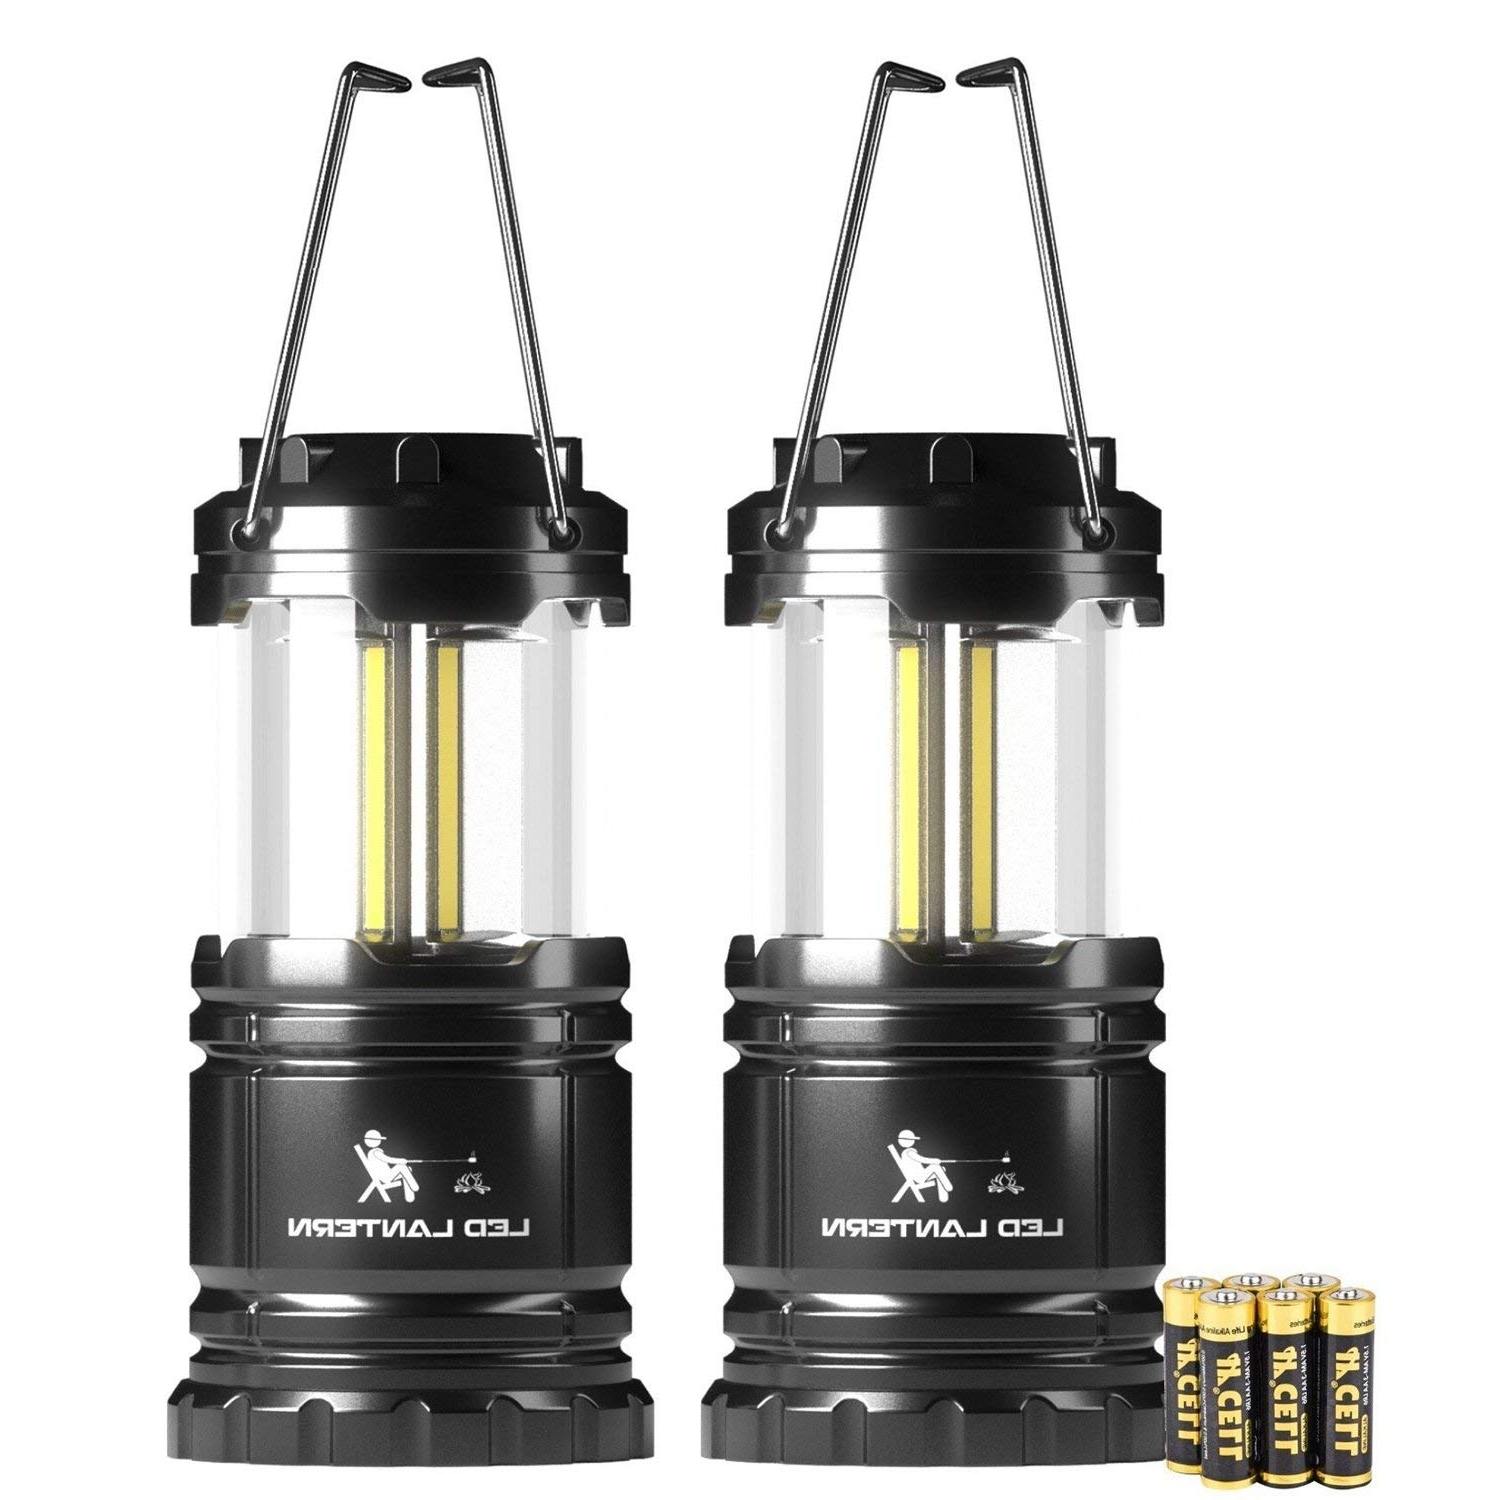 Outdoor Lanterns At Amazon For Most Up To Date 350 Lumen Portable Outdoor Lights, Only $ (View 7 of 20)